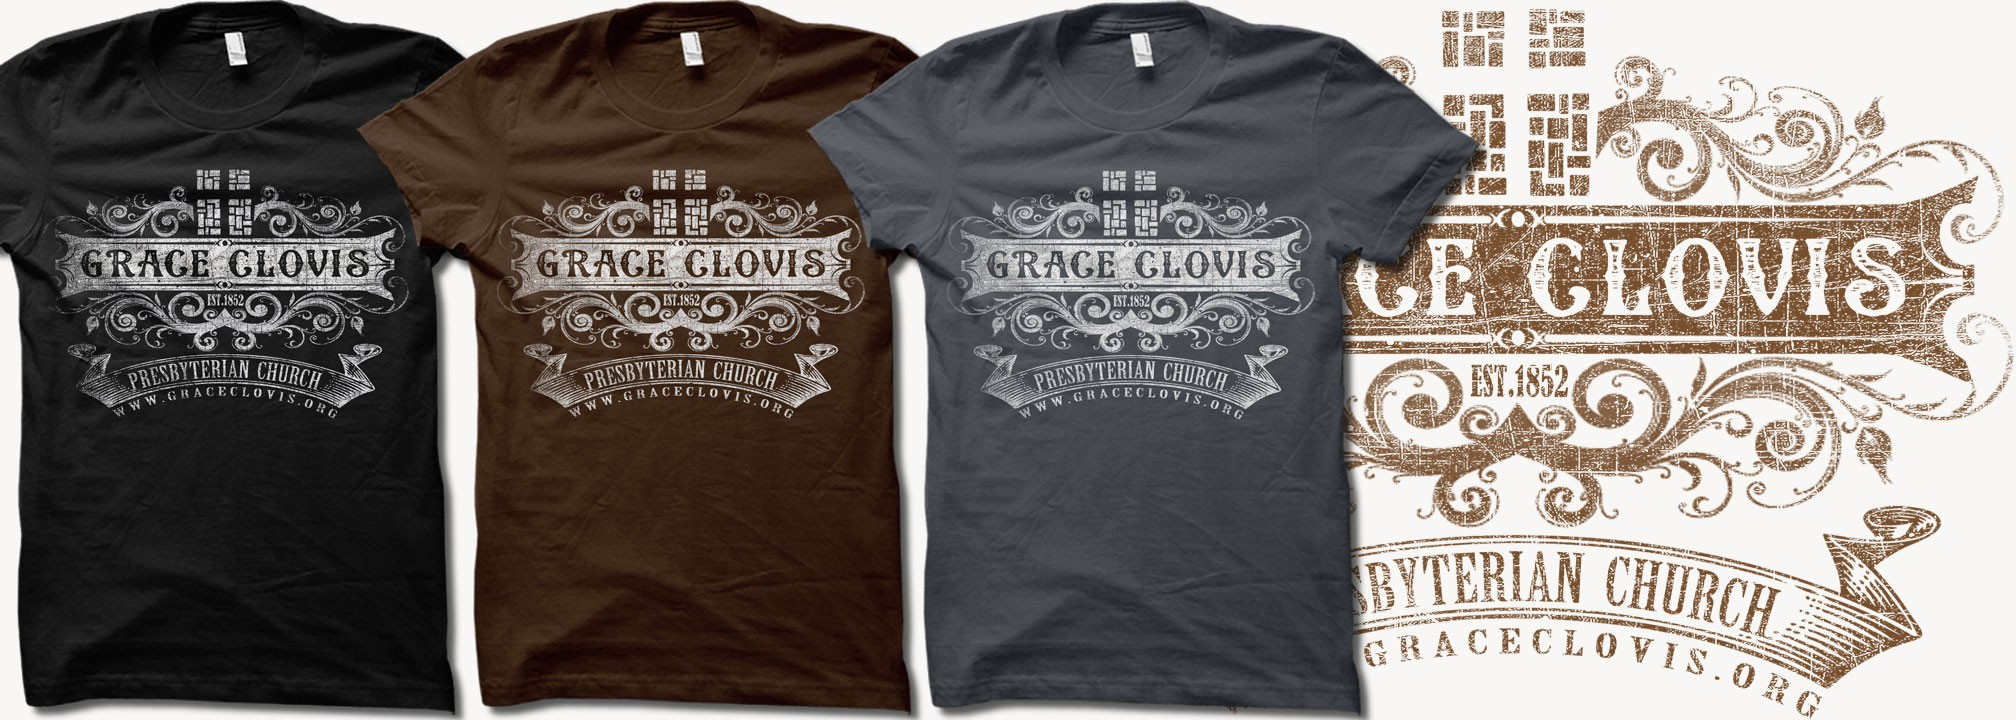 Grace Clovis - Looking for a clean and creative t-shirt design